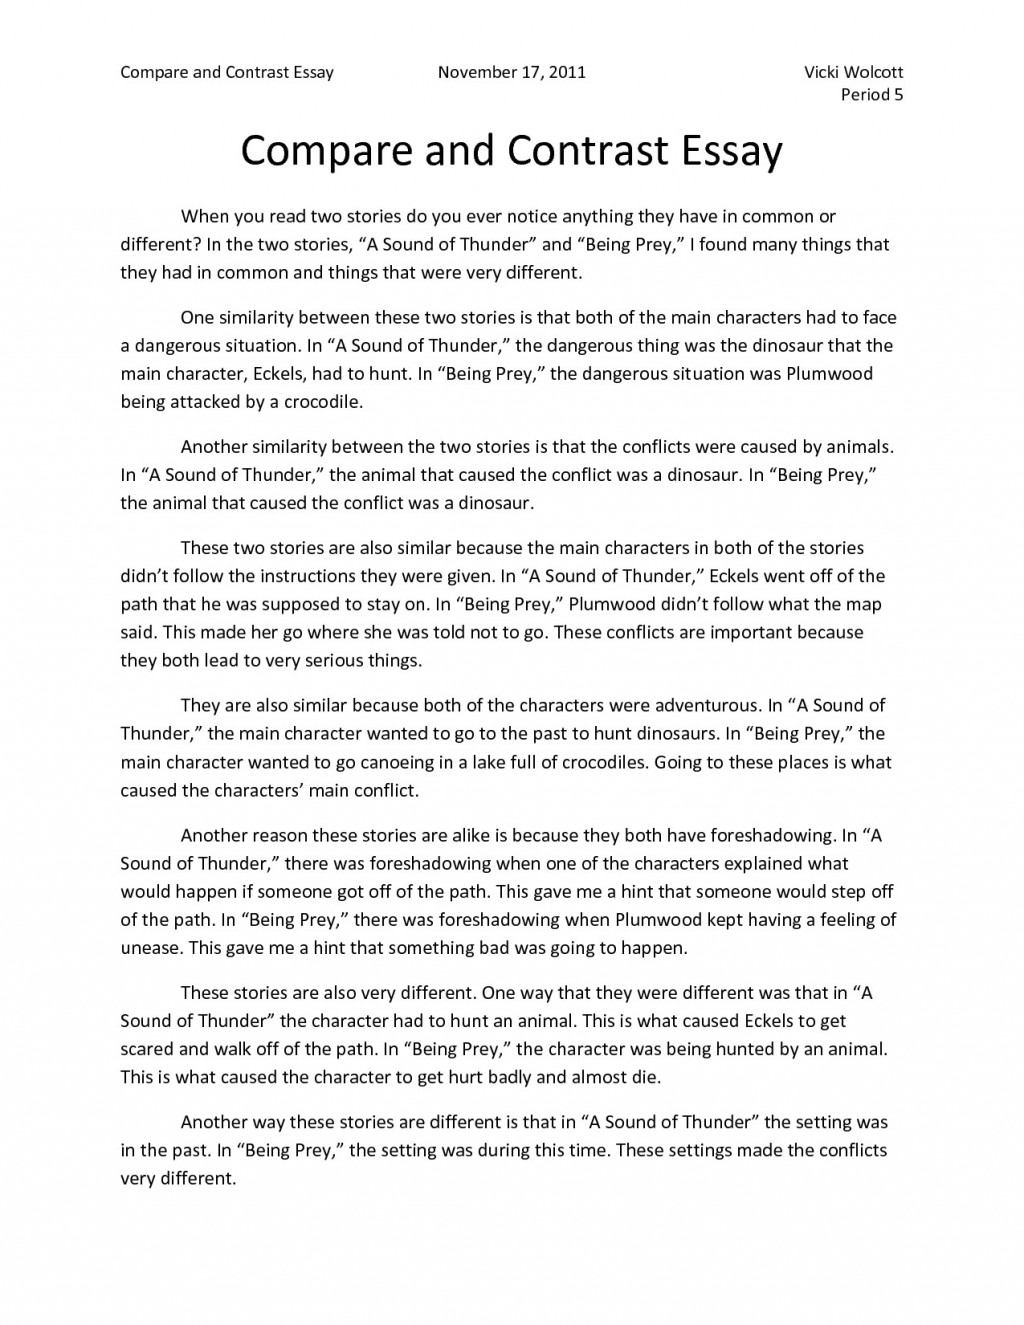 006 Comparing And Contrasting Essay Example Satire Examples Of Comparison Contrast Essays Com How To Write Outstanding A Compare Format Block Conclusion Paragraph For Large